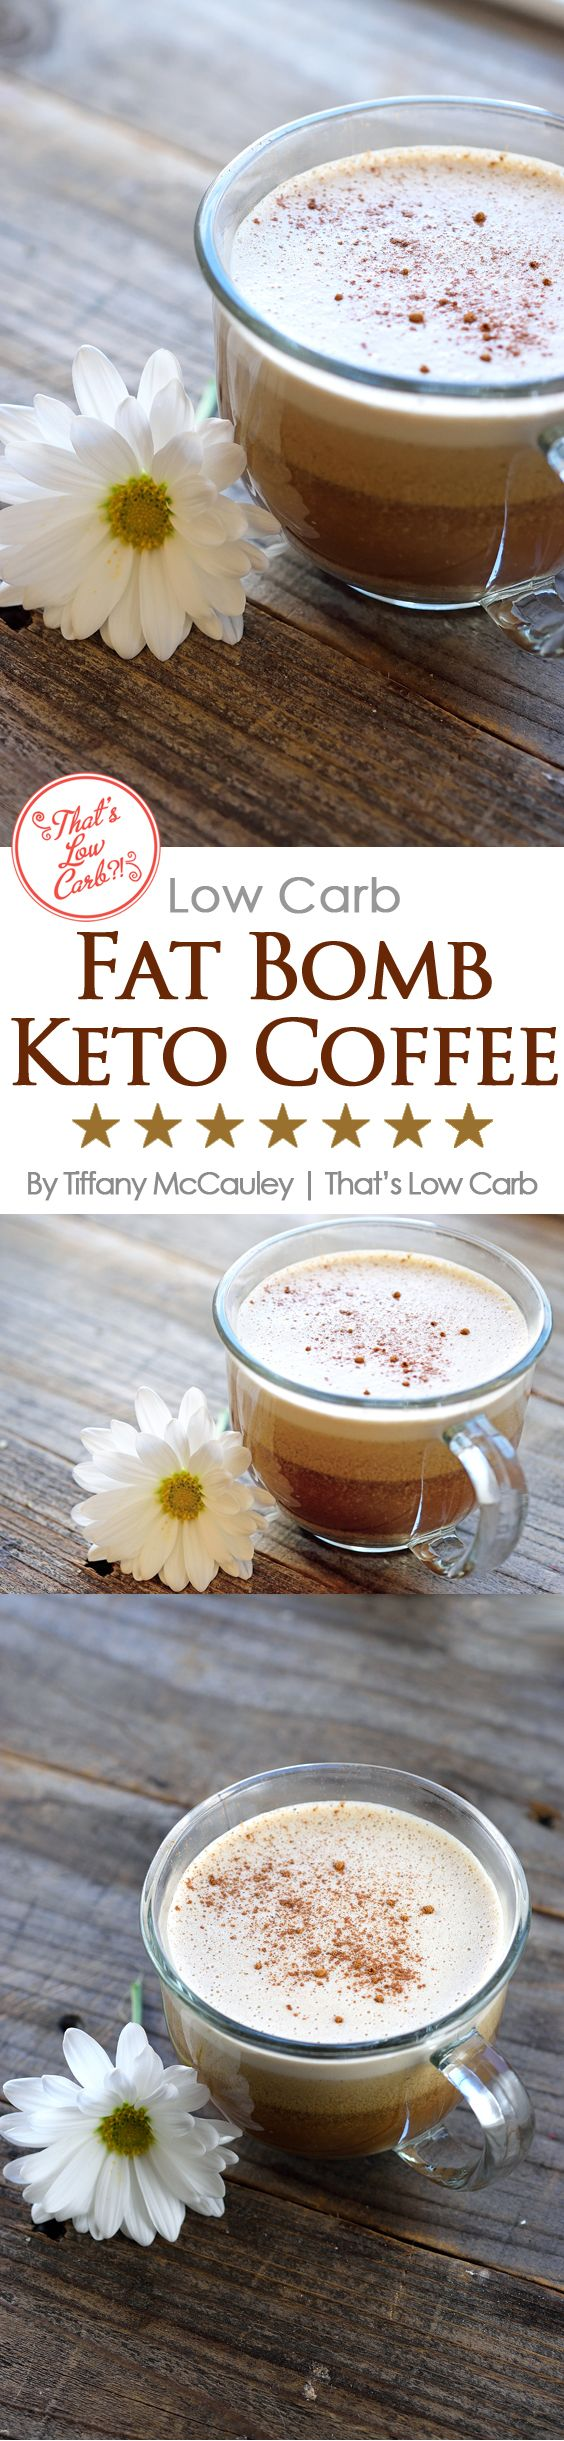 This delicious, low carb, fat bomb, keto coffee is the perfect start to your morning. Full of healthy fats and flavor, you'll come back to this recipe again and again. ~ http://www.thatslowcarb.com